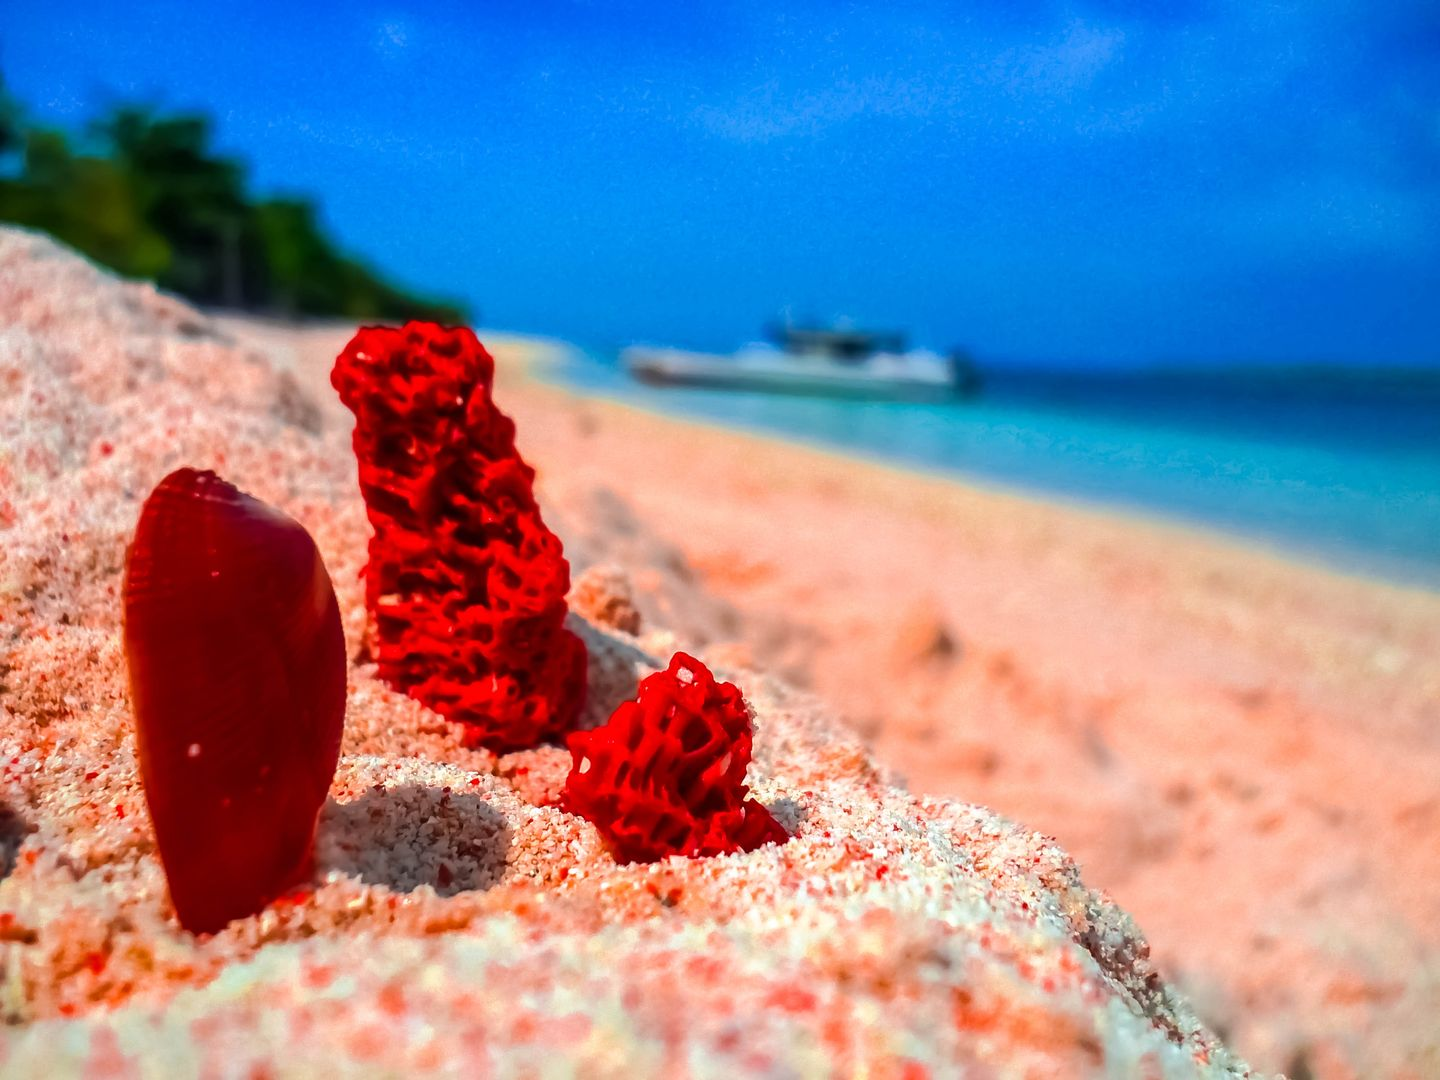 A trio of red organ pipe corals among the pinkish sands of a beach